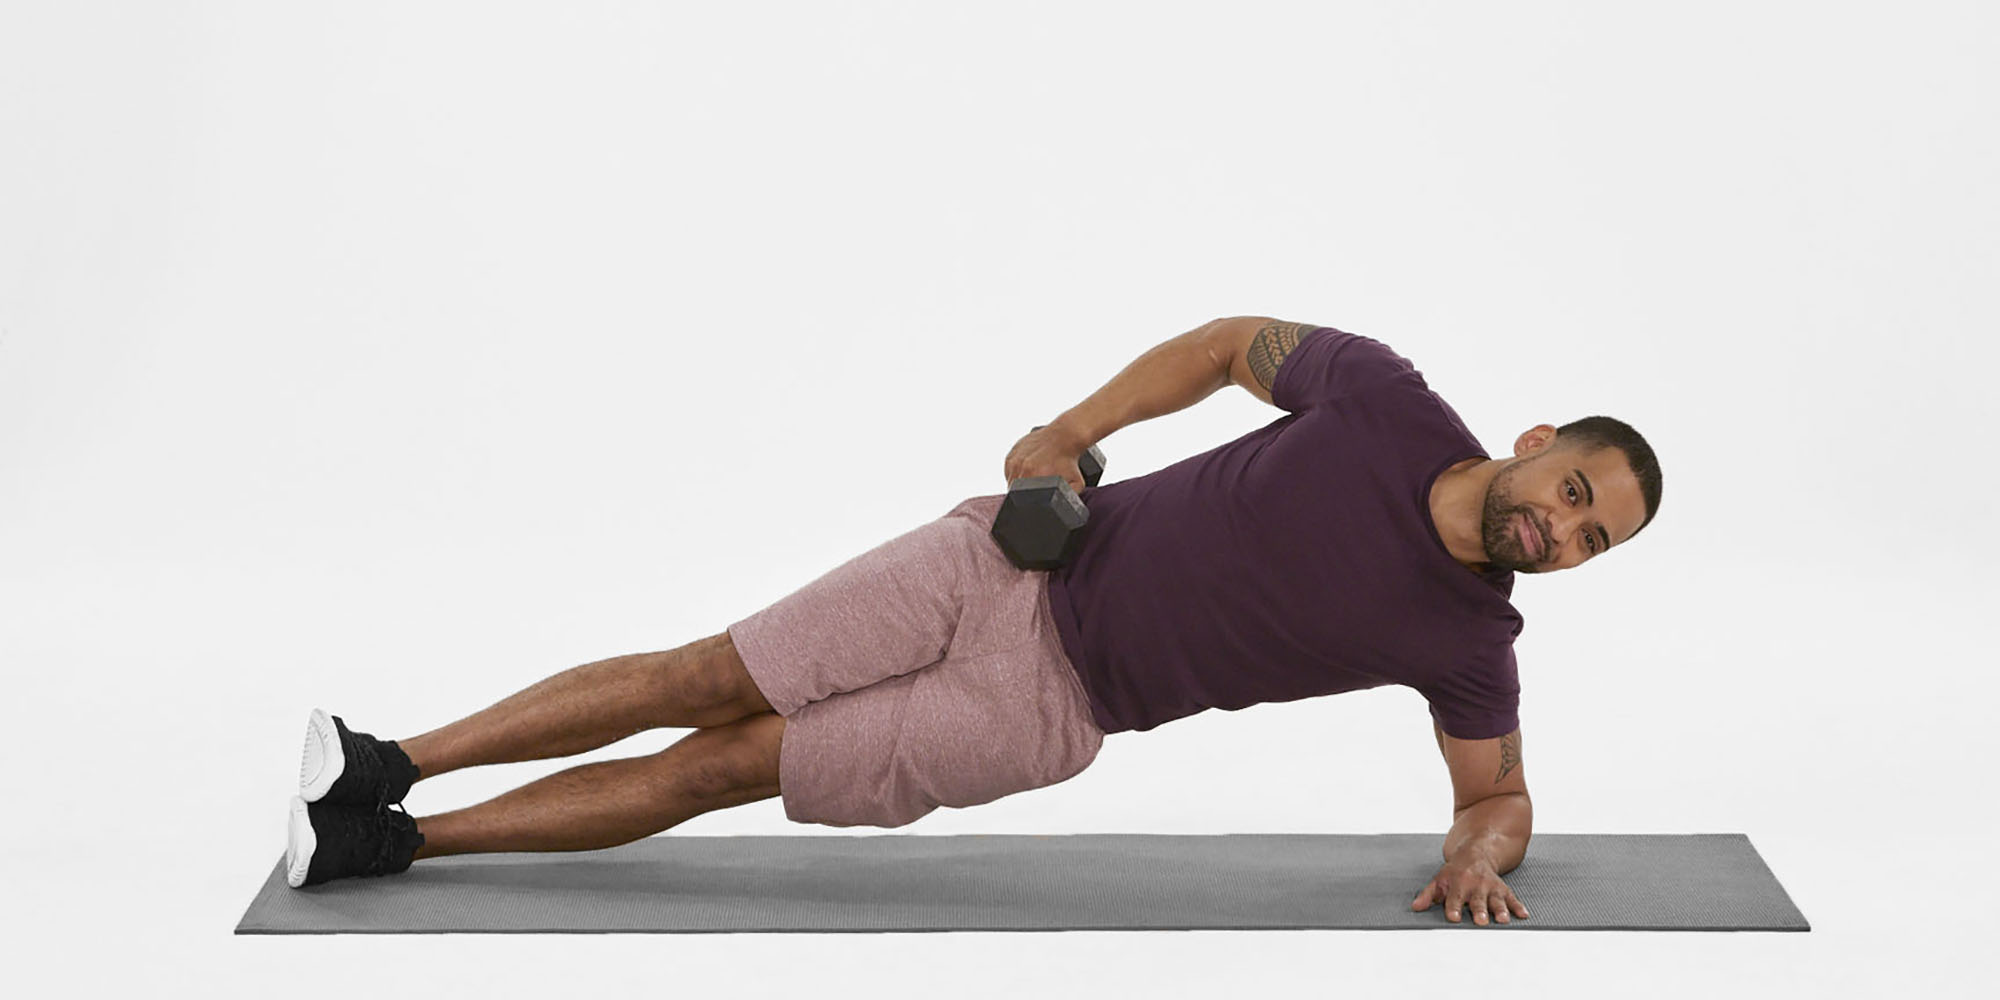 Side Plank Hip Lifts Exercise: How to Do It Properly | Openfit